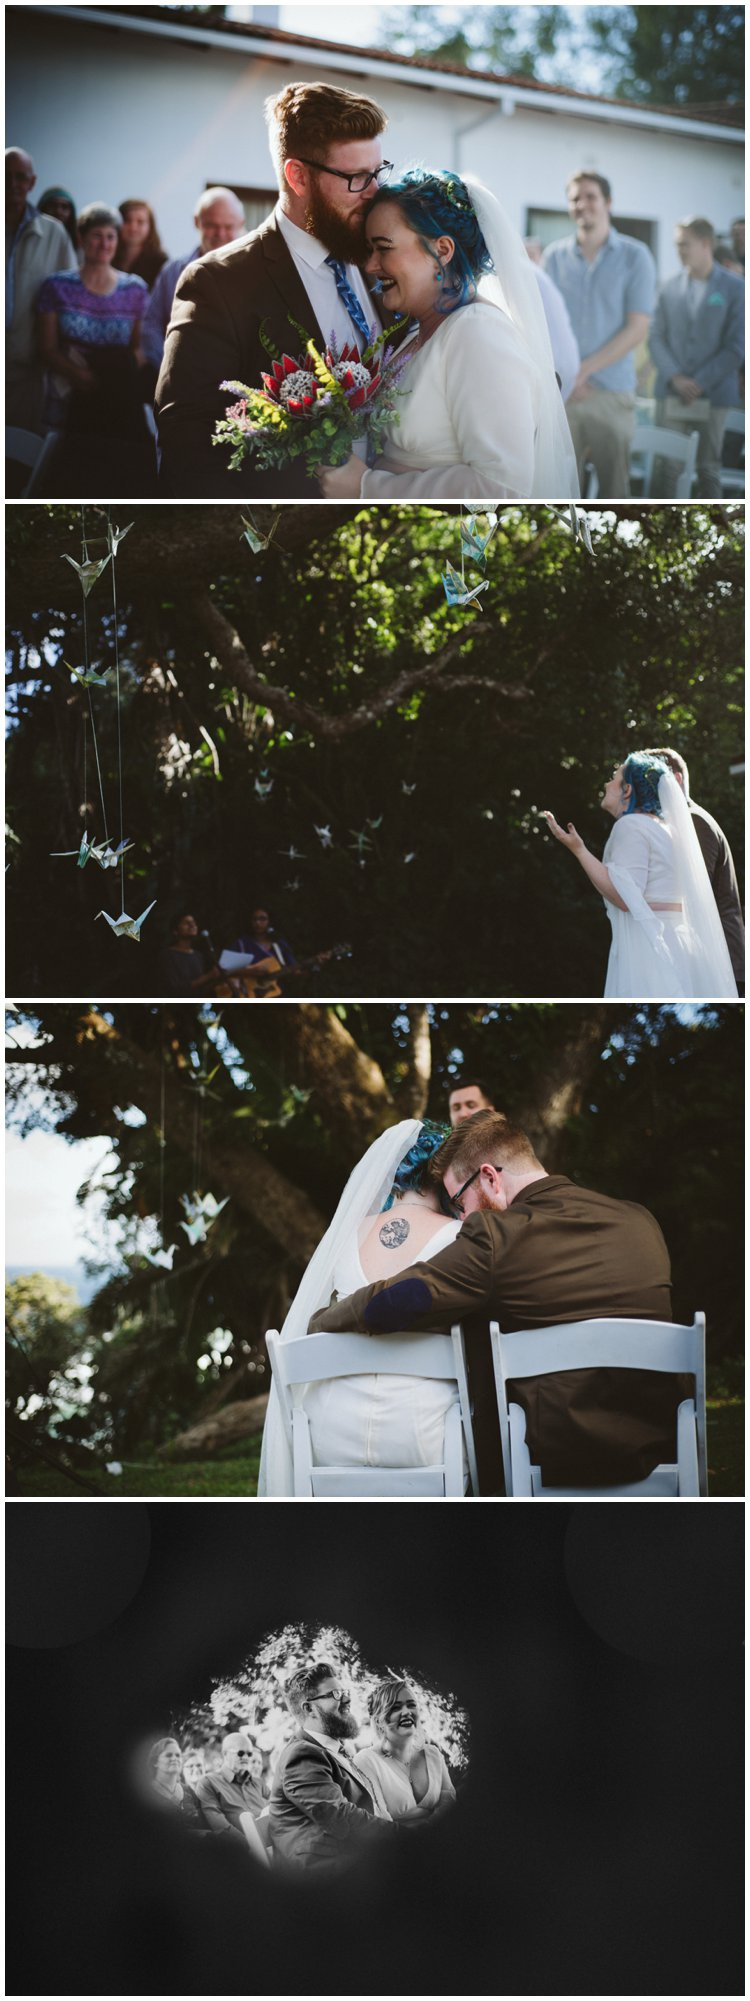 , {Love} Unscripted | Courtney & Tom, Casey Pratt Photography